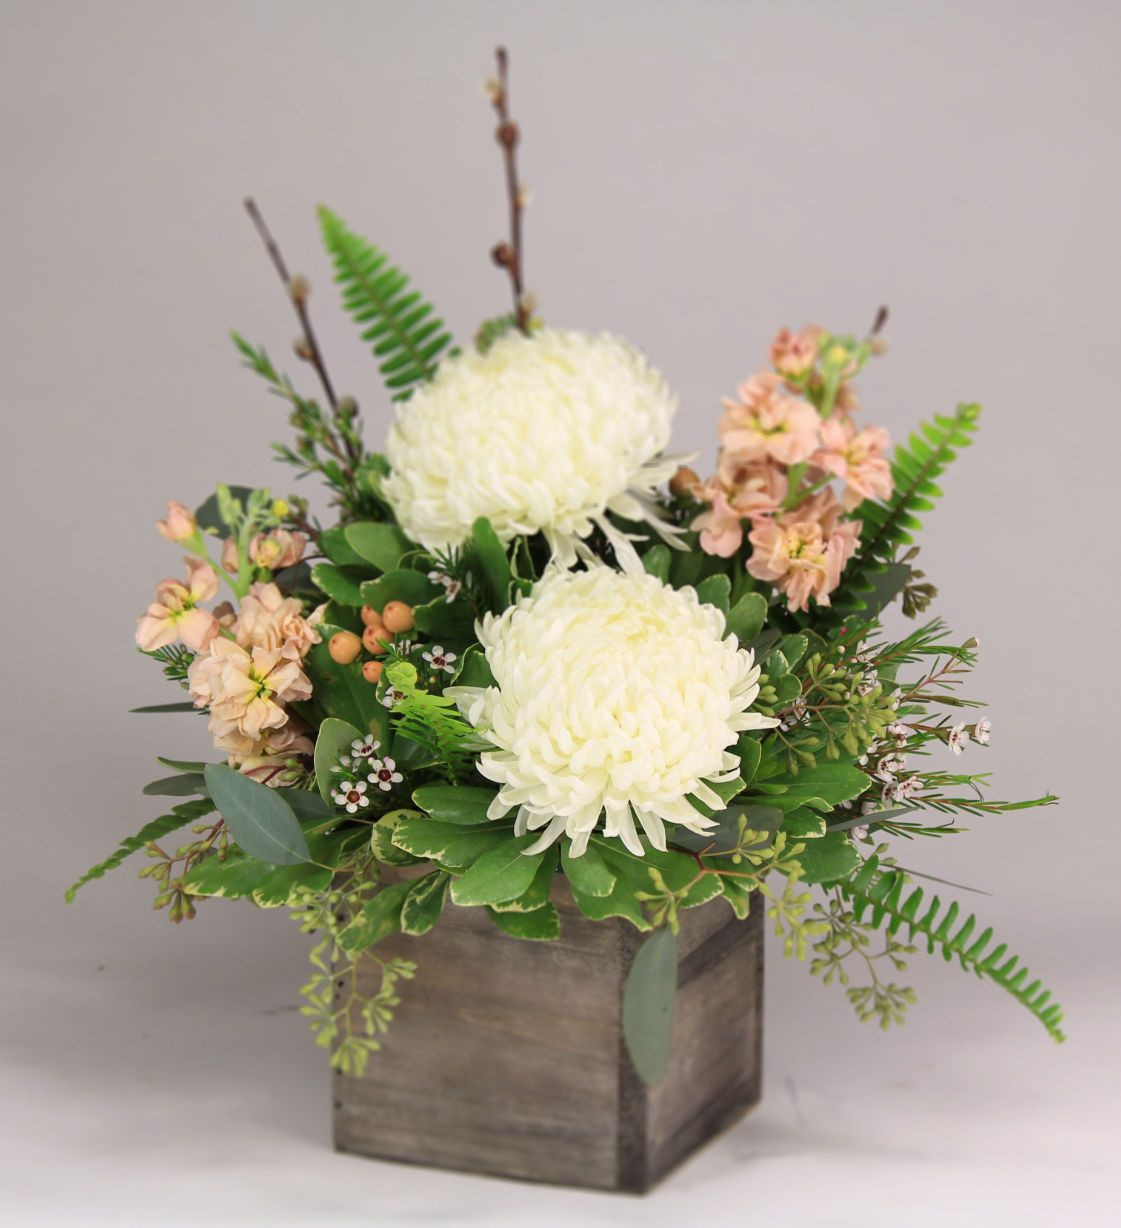 clear cube vase of footballs and stock a wooden cube vase with ivory football mums regarding footballs and stock a wooden cube vase with ivory football mums peach stock and